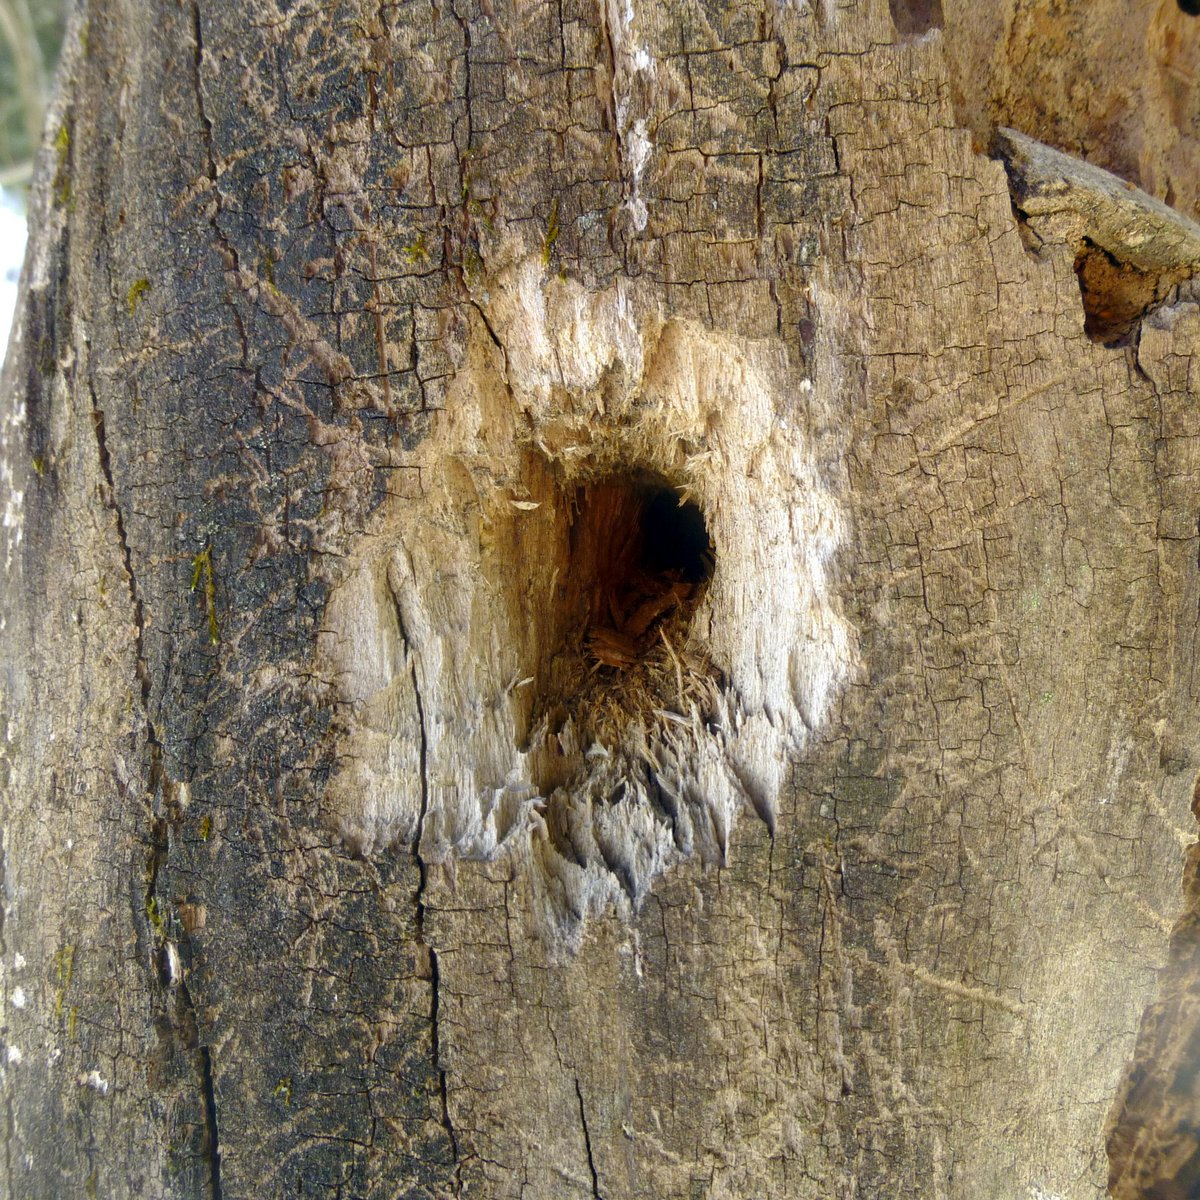 14. Woodpecker Hole